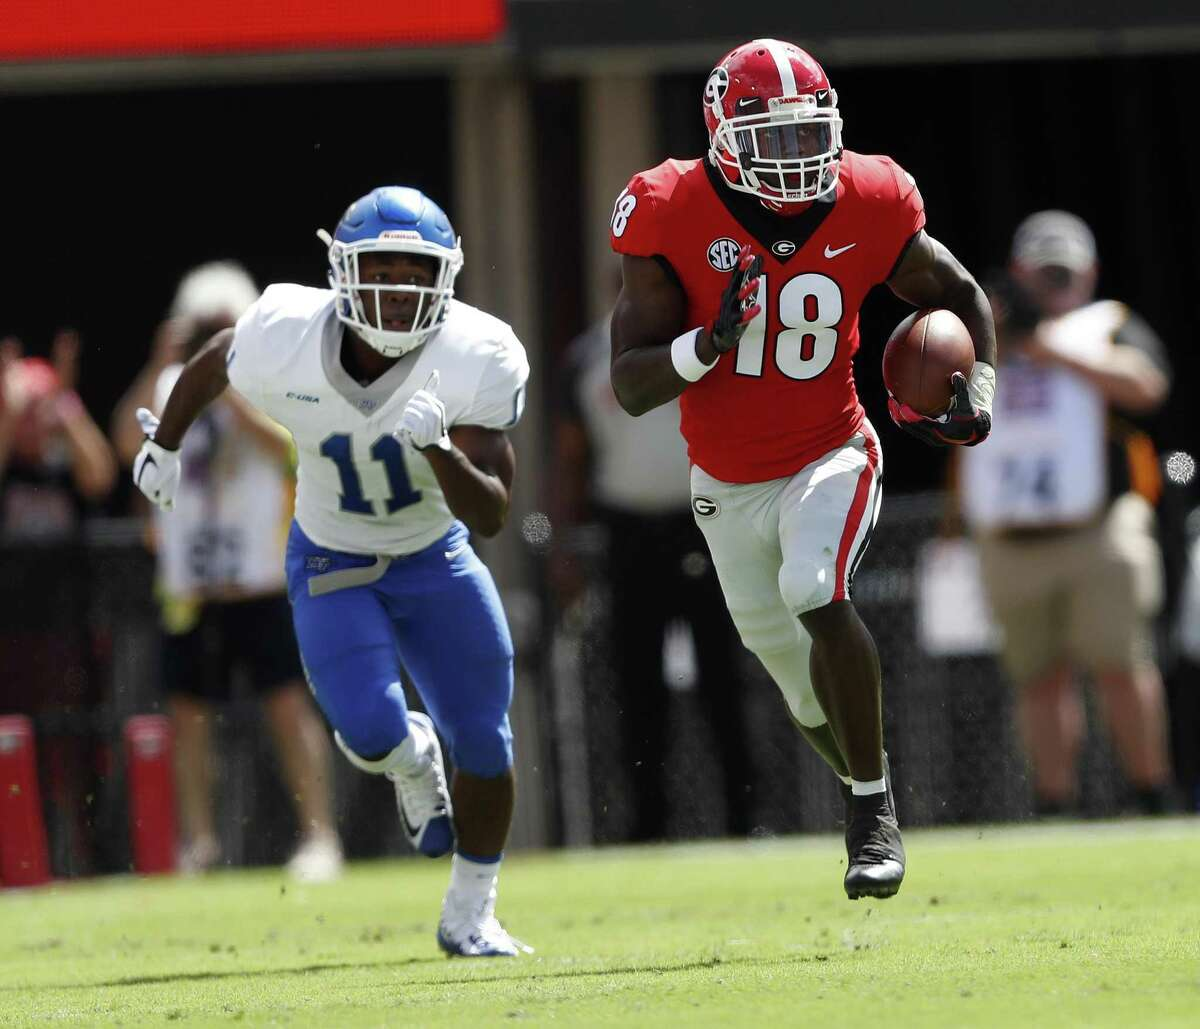 Georgia defensive back Deandre Baker is expected to start immediately after being taken in the NFL draft.